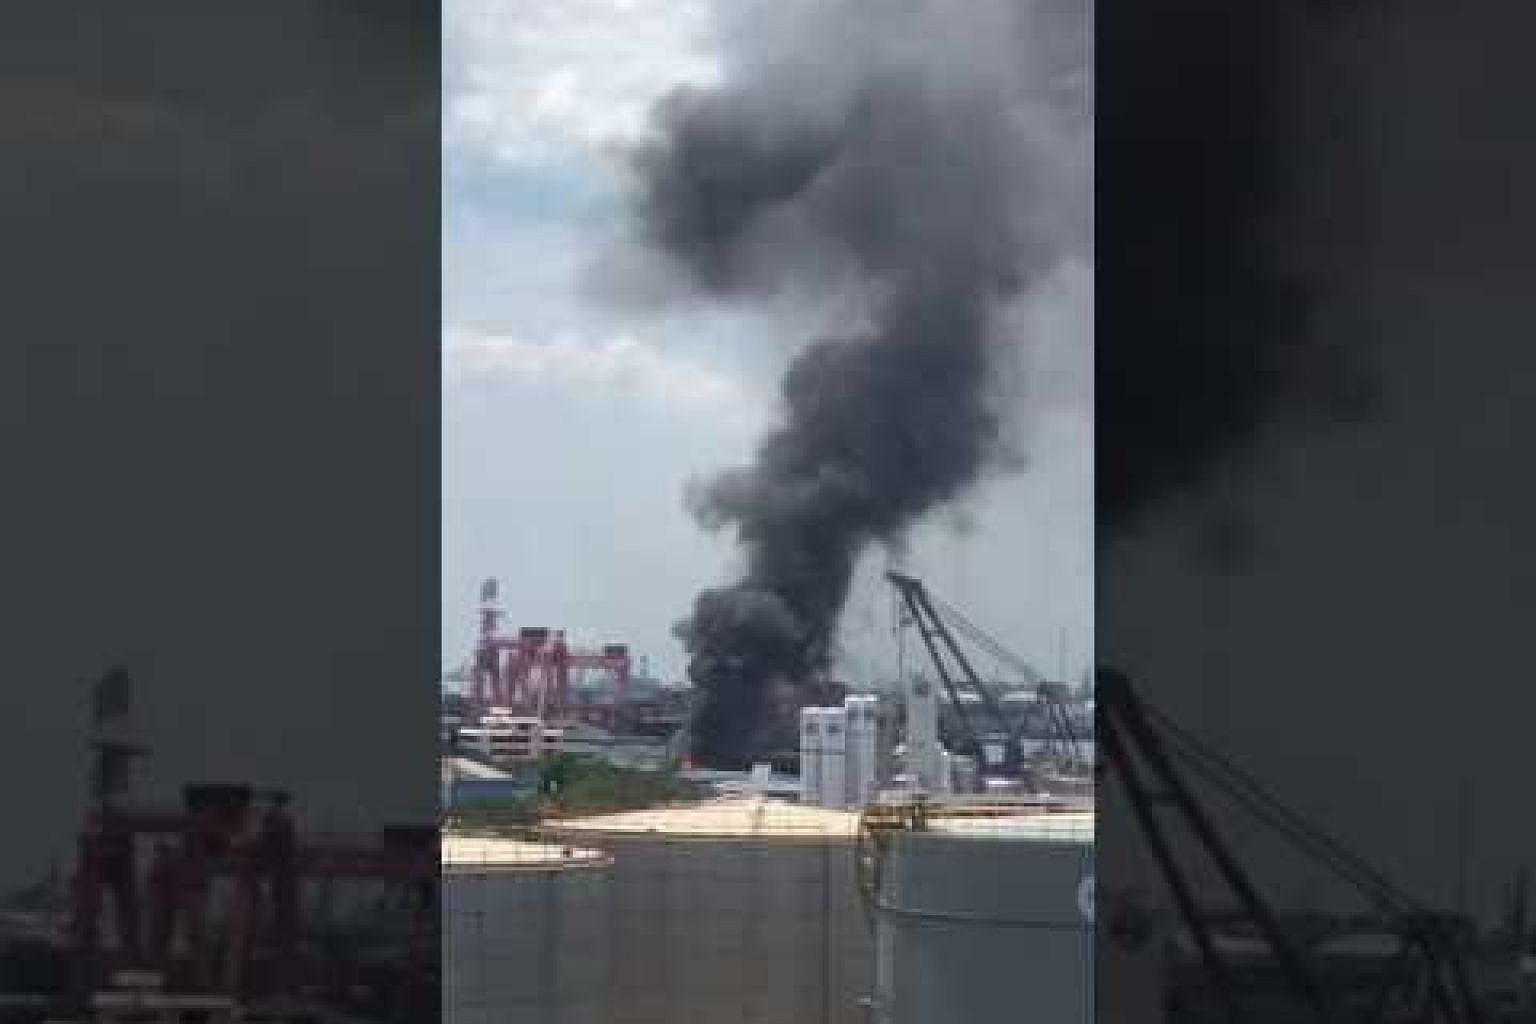 Fire breaks out at warehouse in Tanjong Kling in Jurong